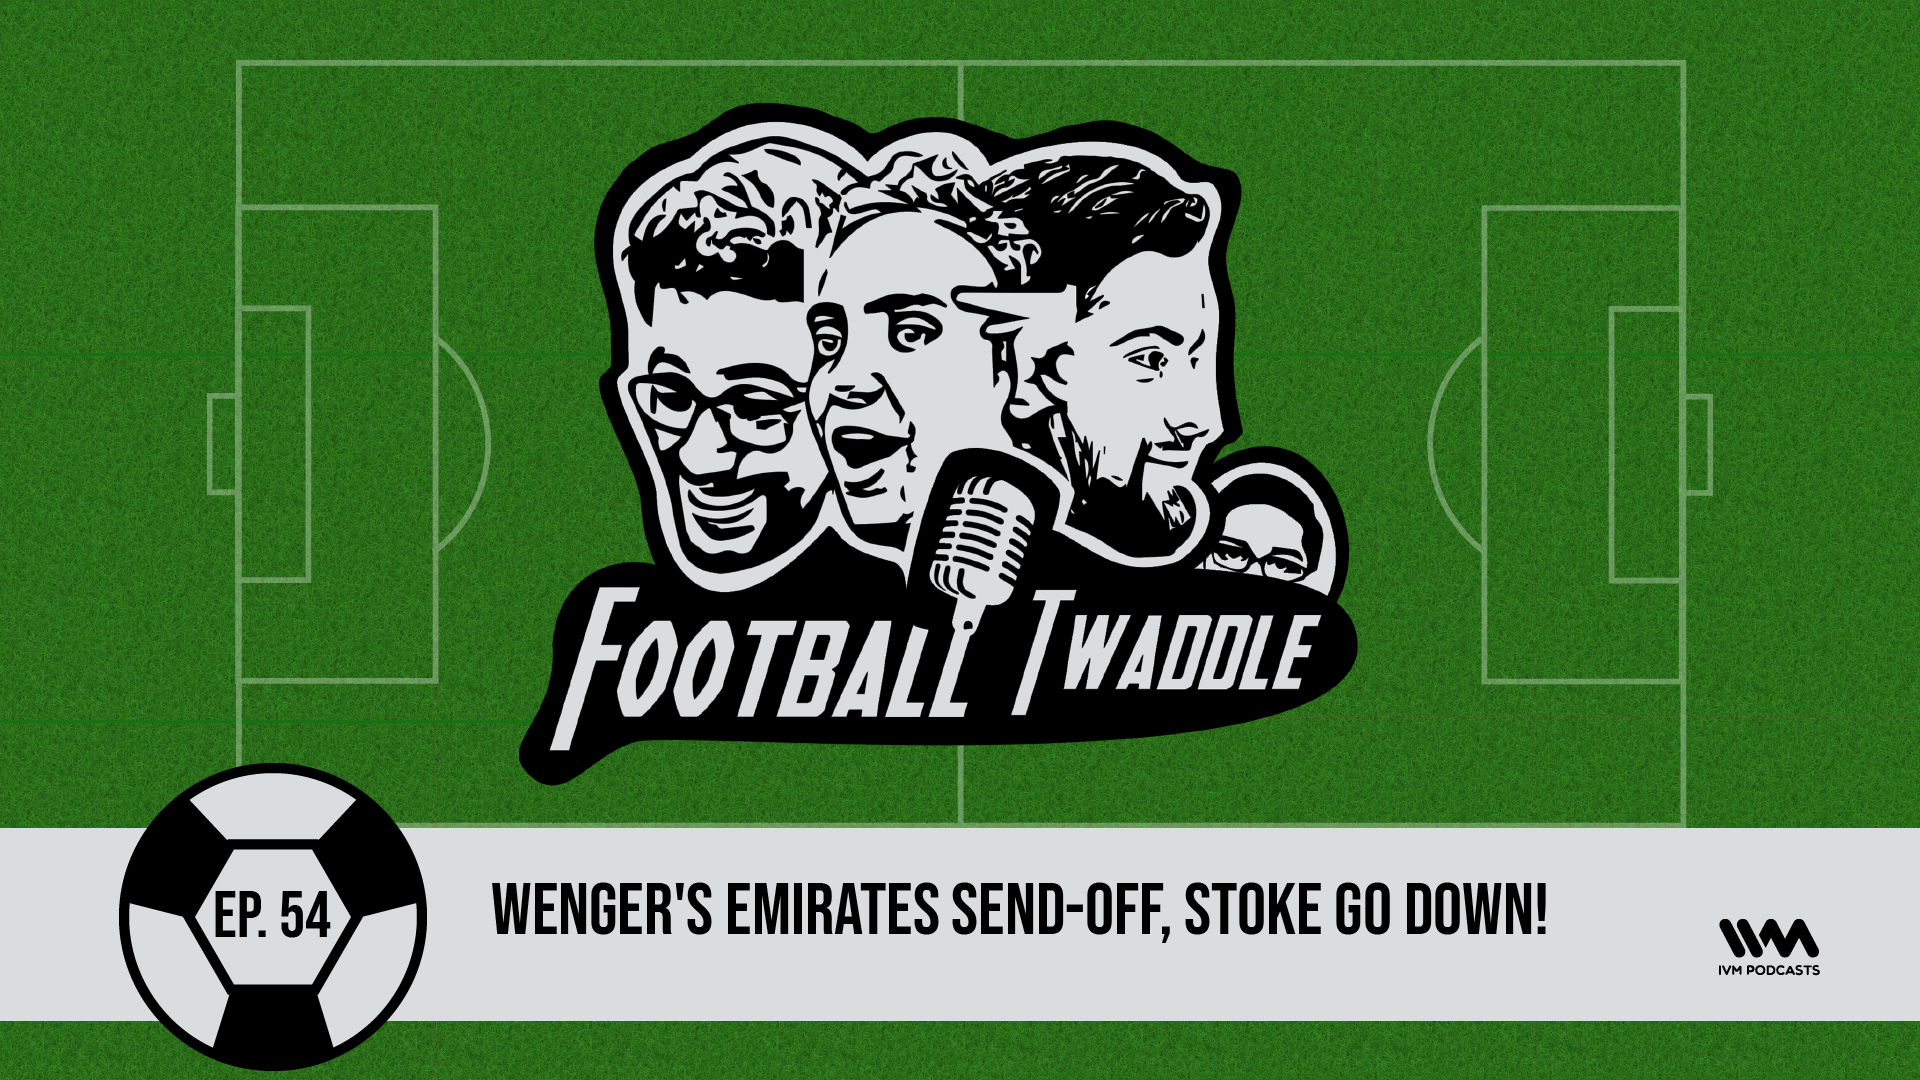 FootballTwaddleEpisode54.png